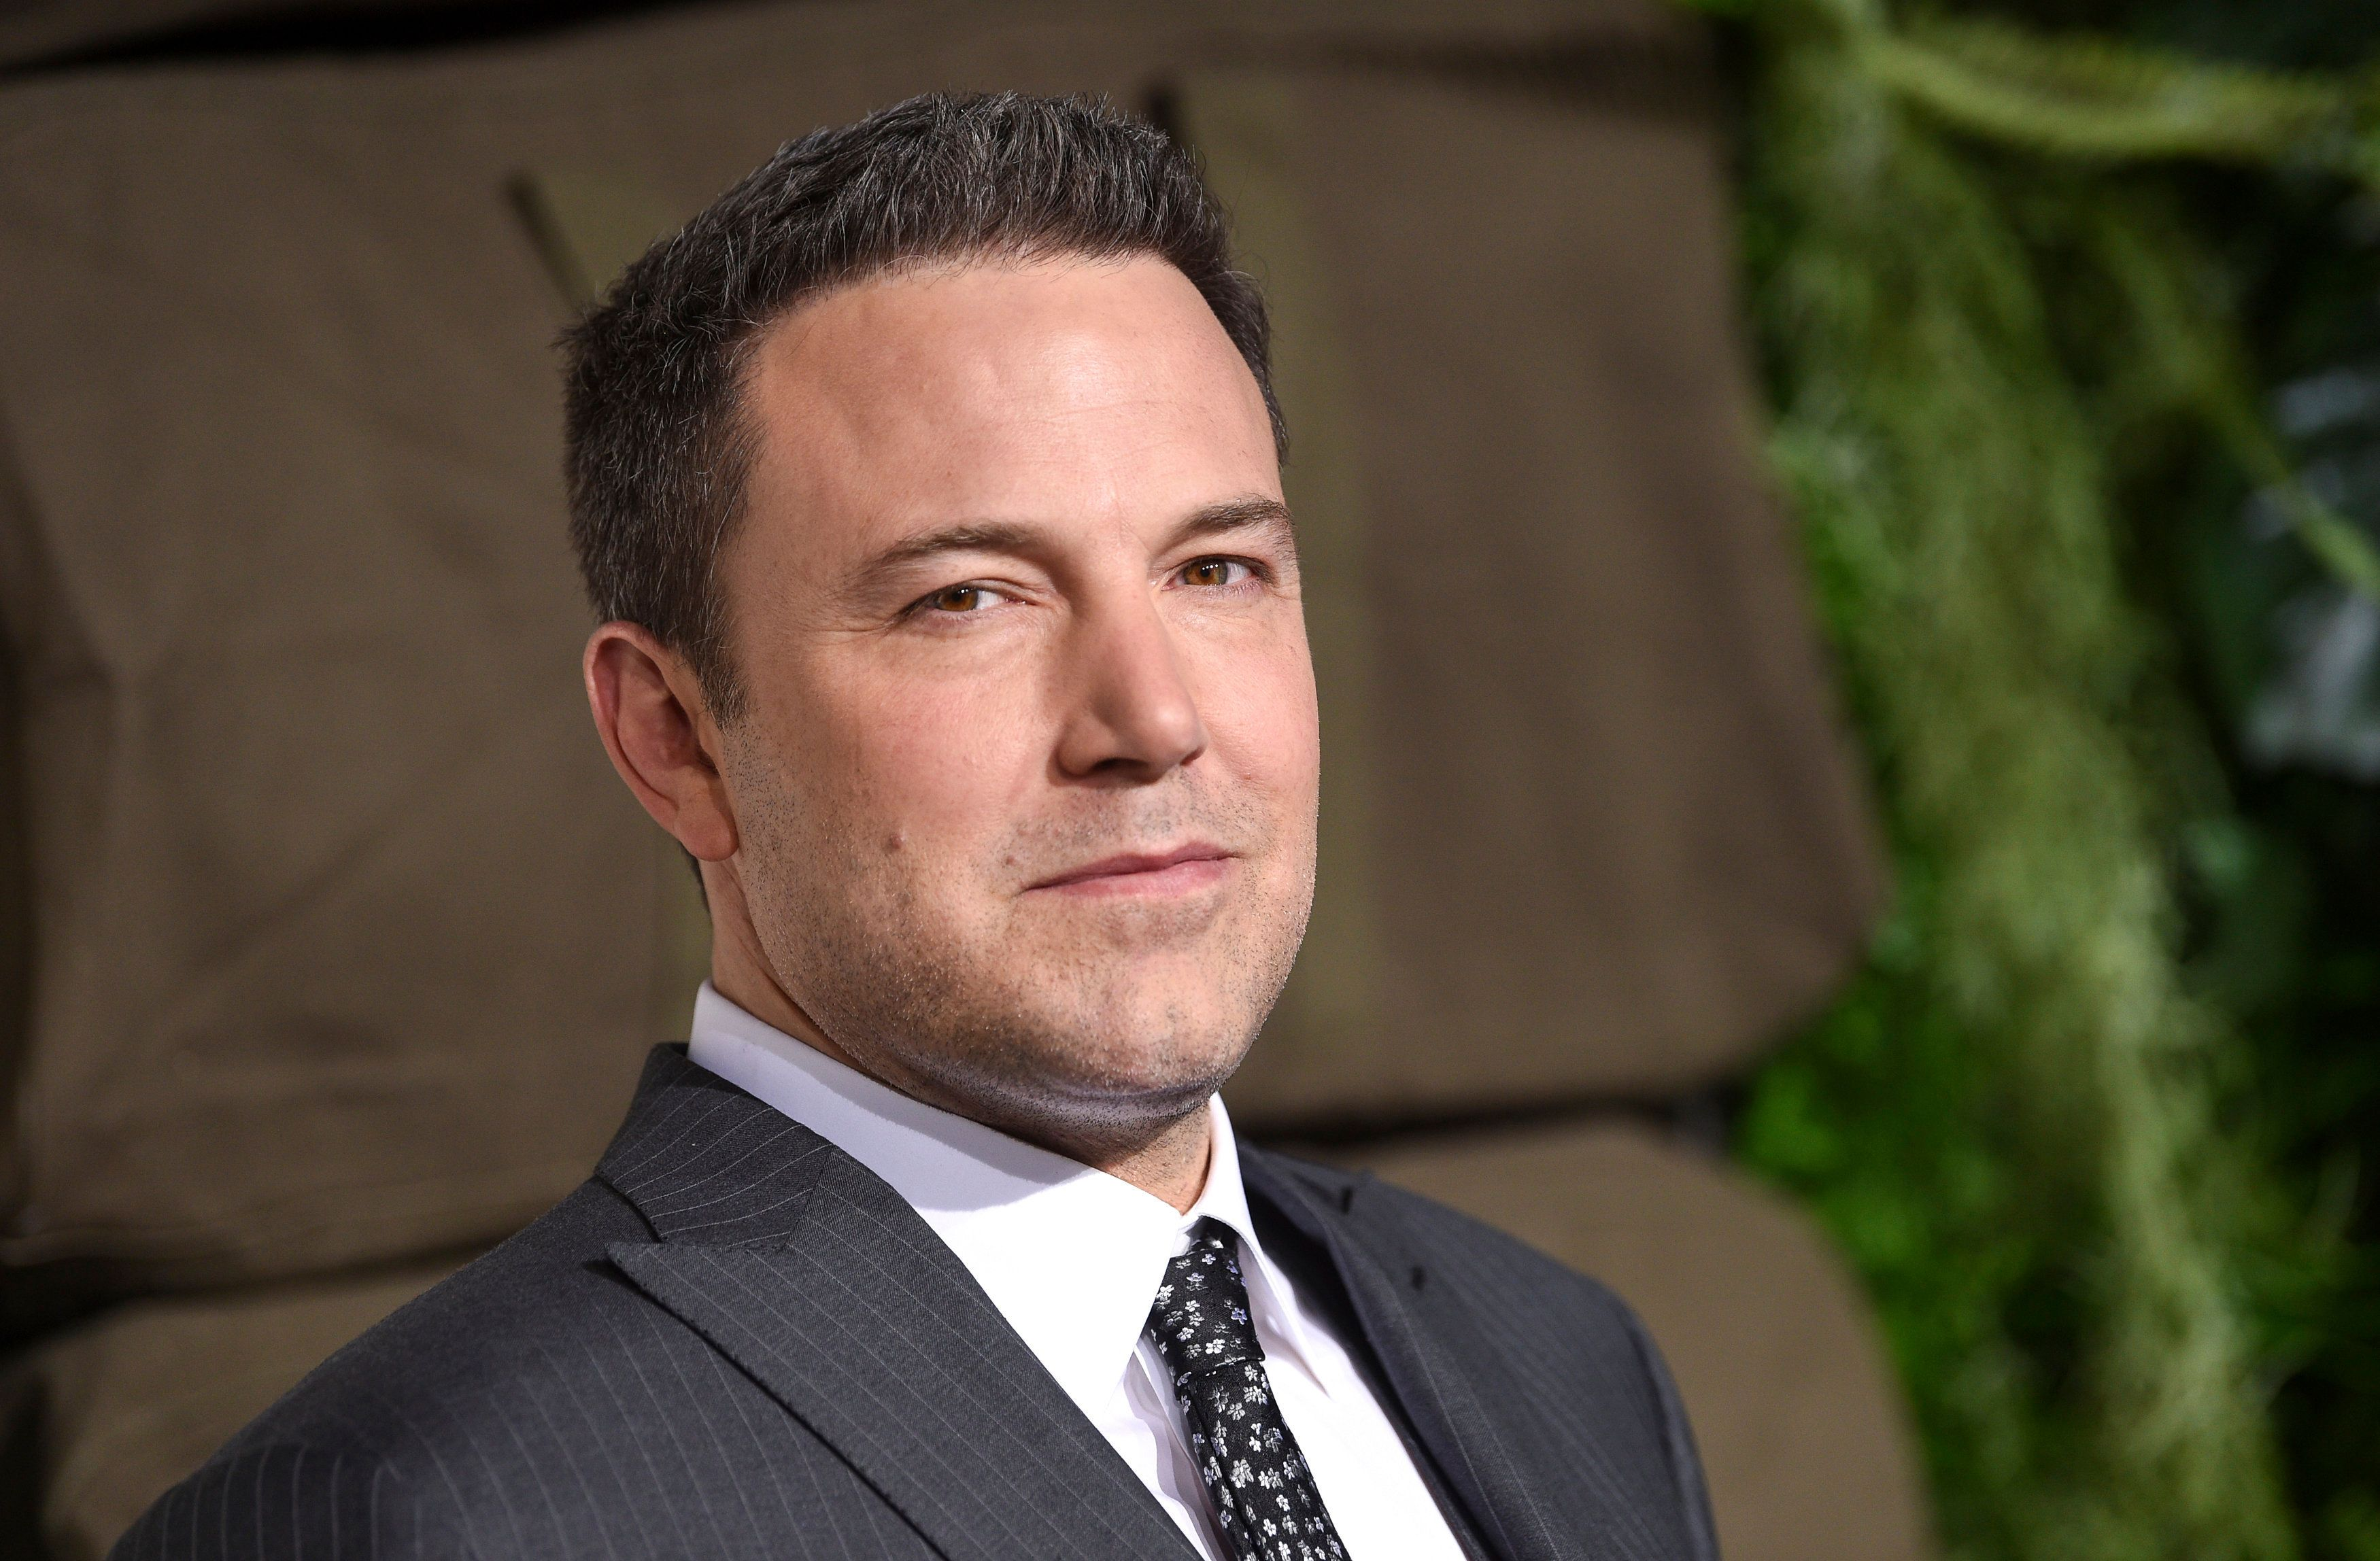 """Actor Ben Affleck attends the world premiere of """"Triple Frontier"""" at Jazz at Lincoln Center on Sunday, March 3, 2019, in New York. (Photo by Evan Agostini/Invision/AP)"""